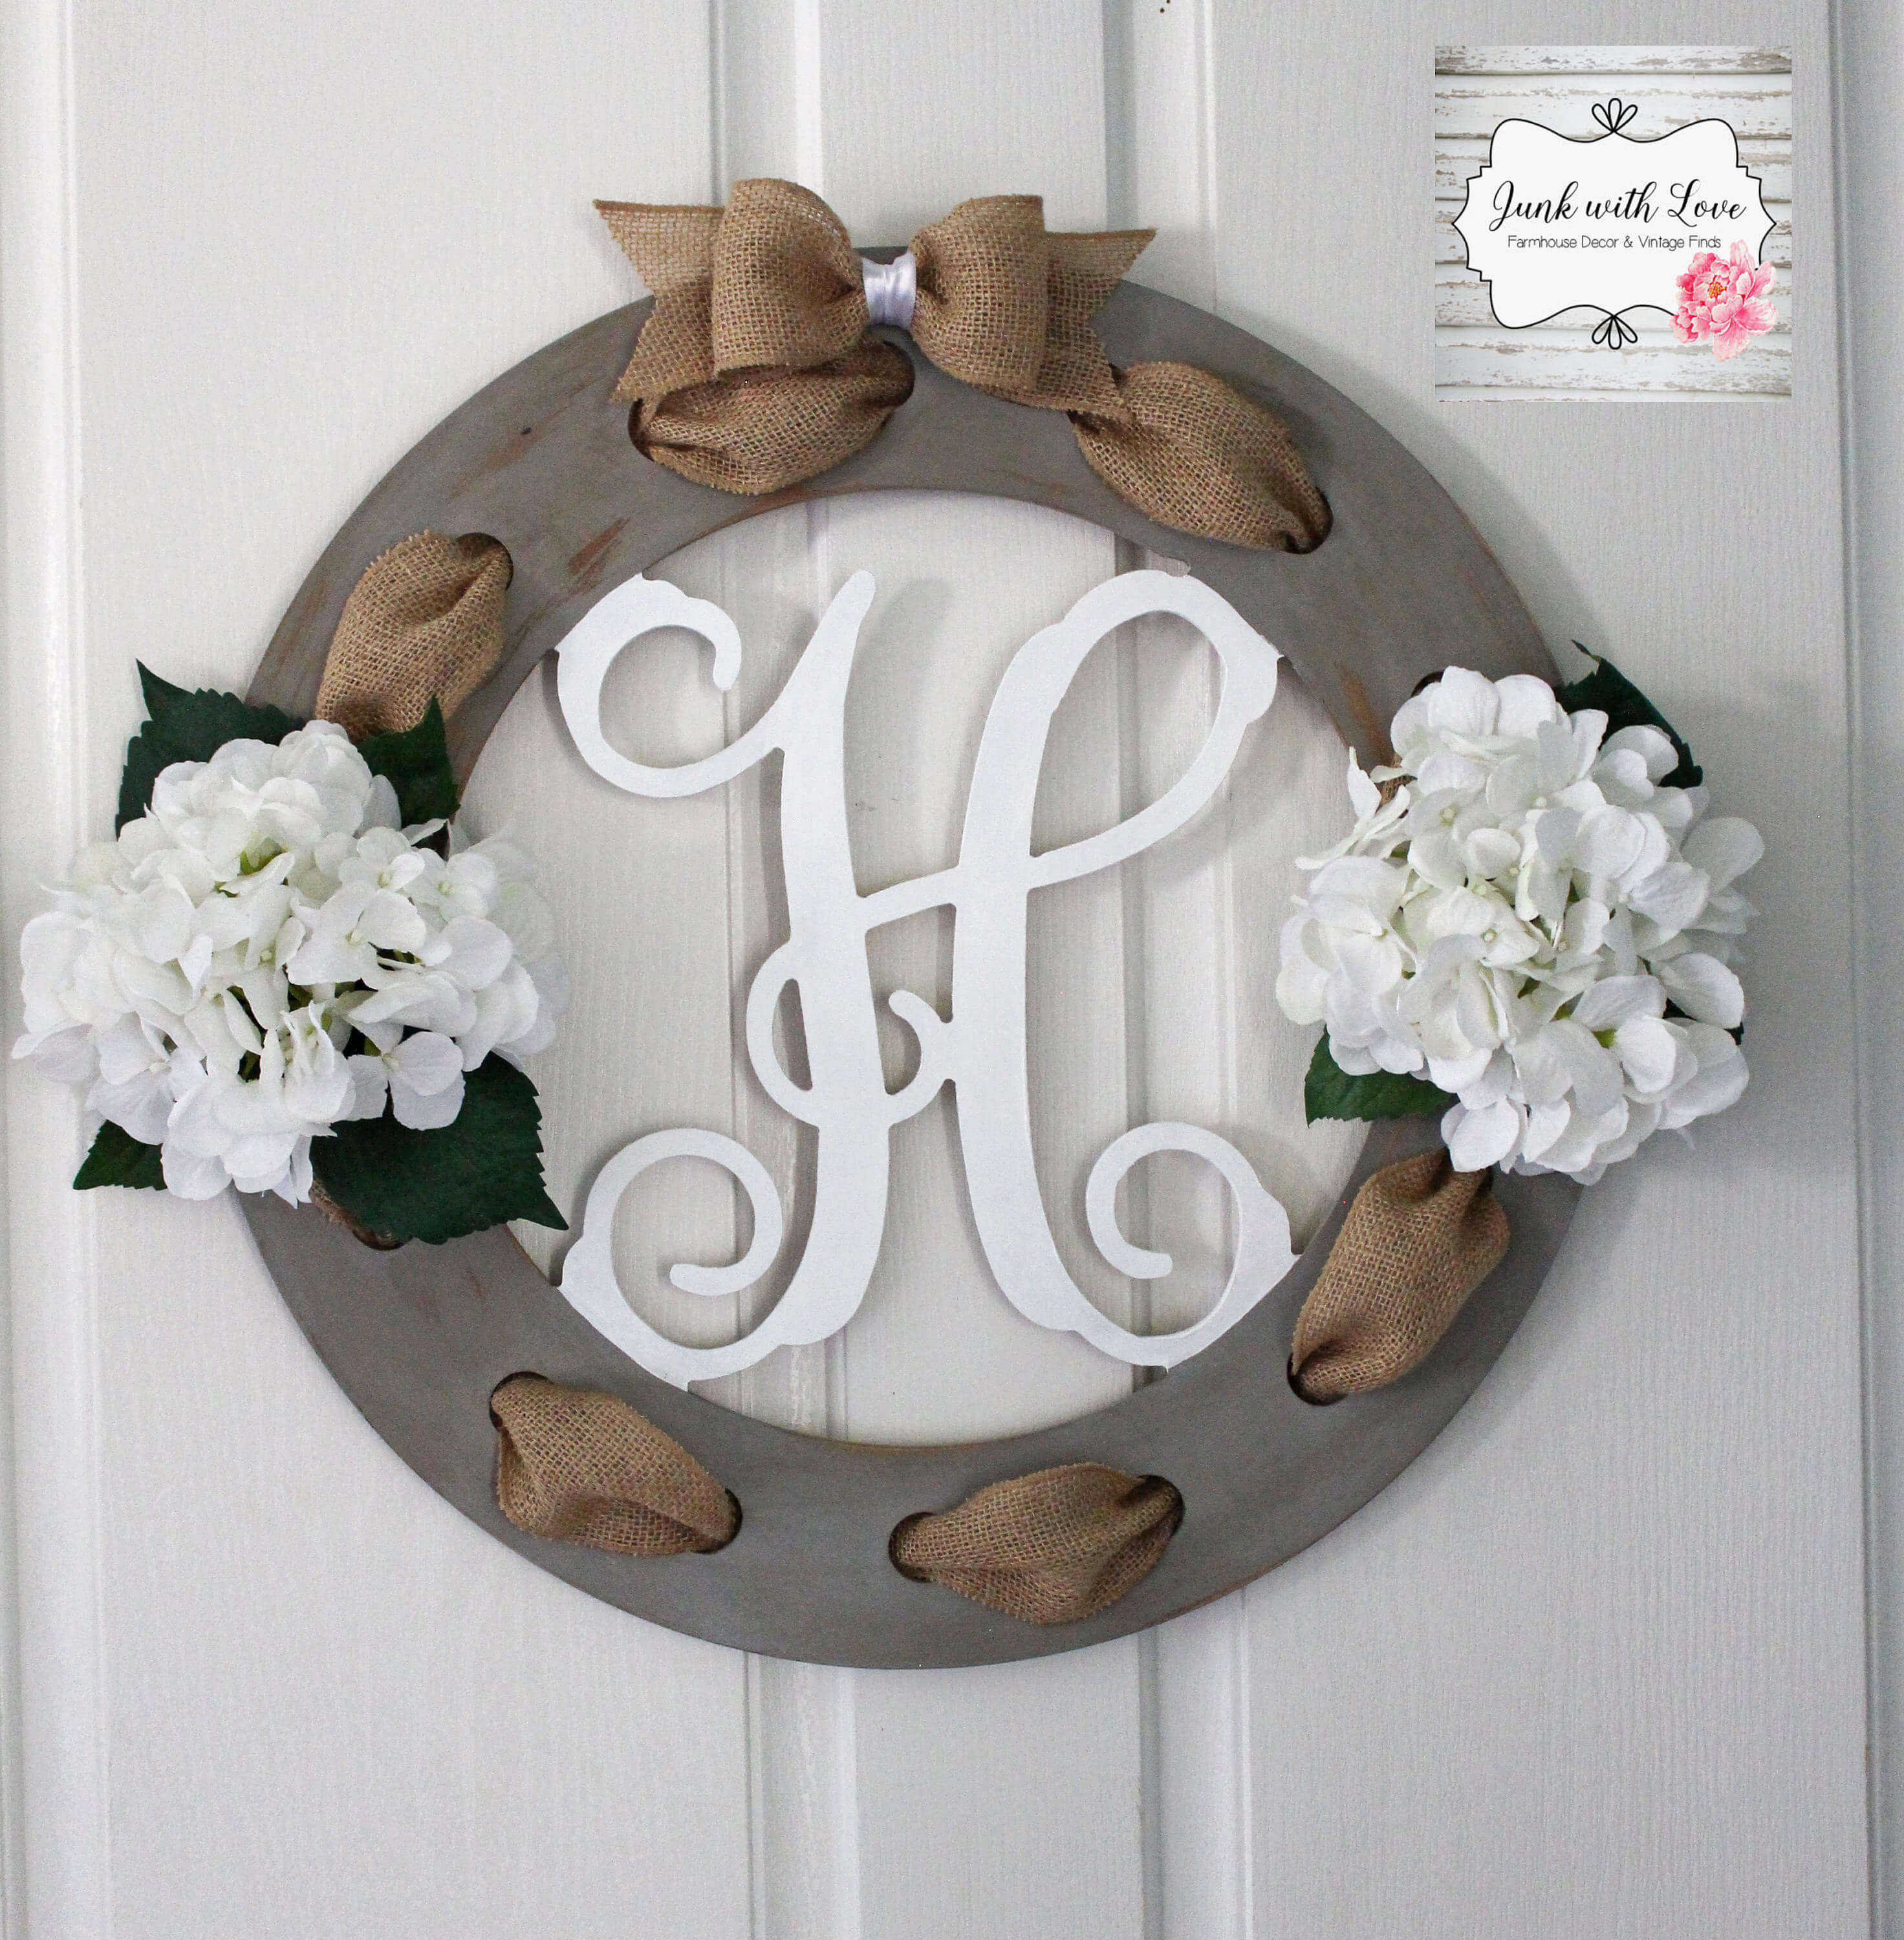 28 Burlap And Wood Wreath With Floral Accents